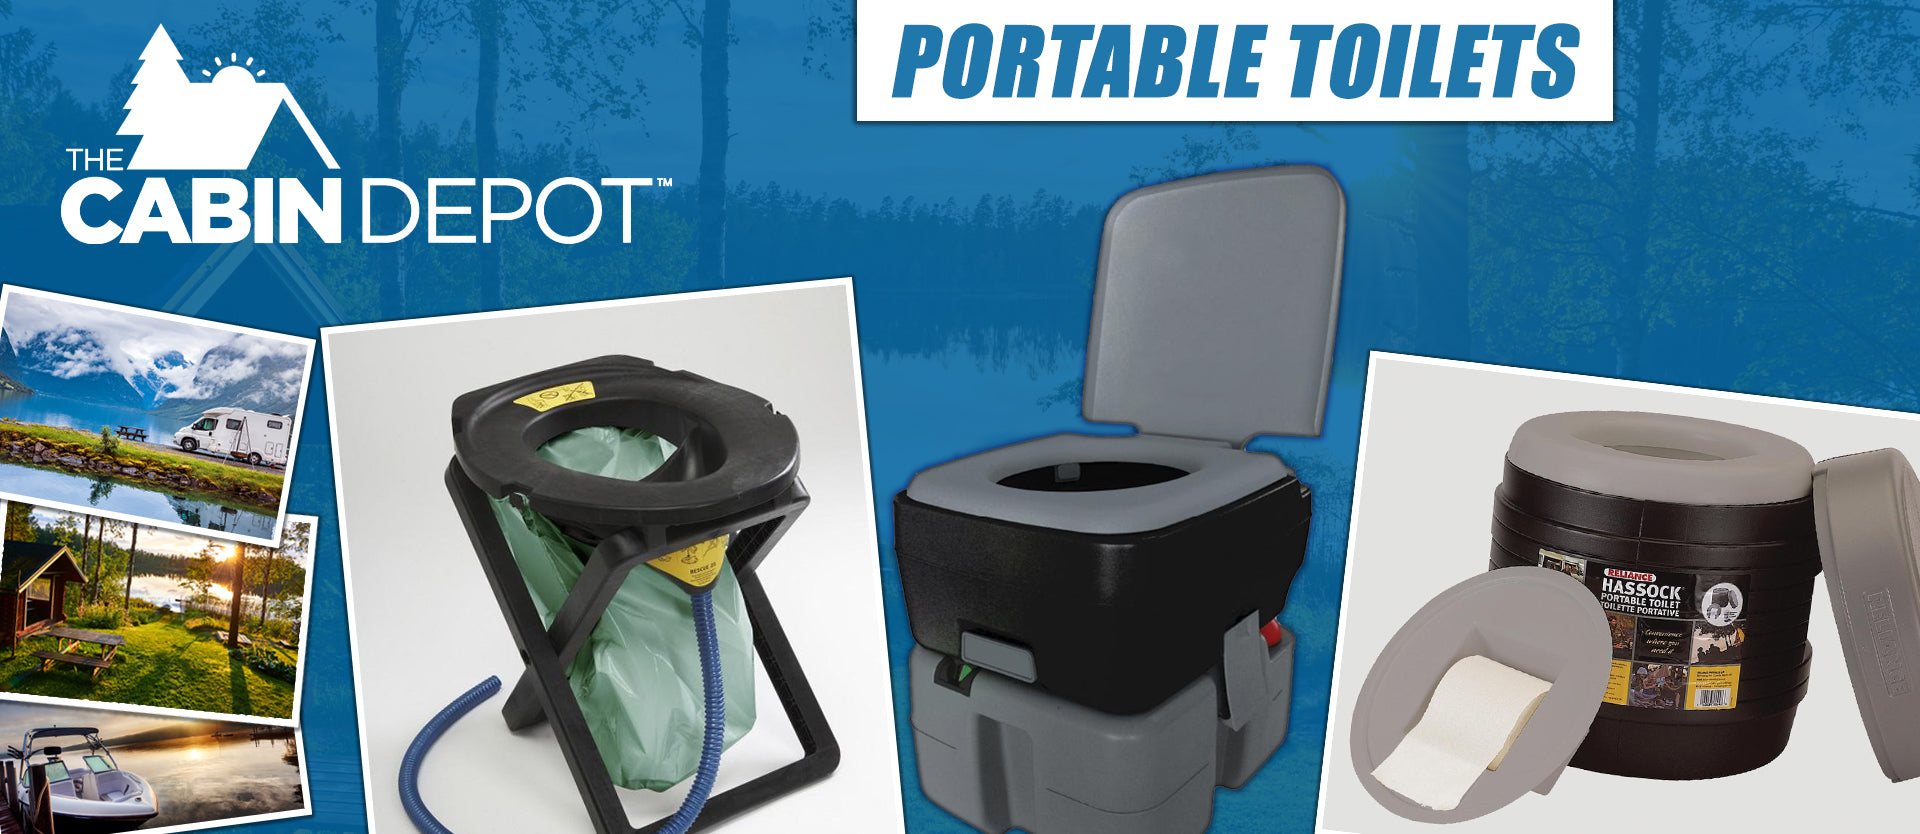 Portable Toilets The Cabin Depot ™ Canada